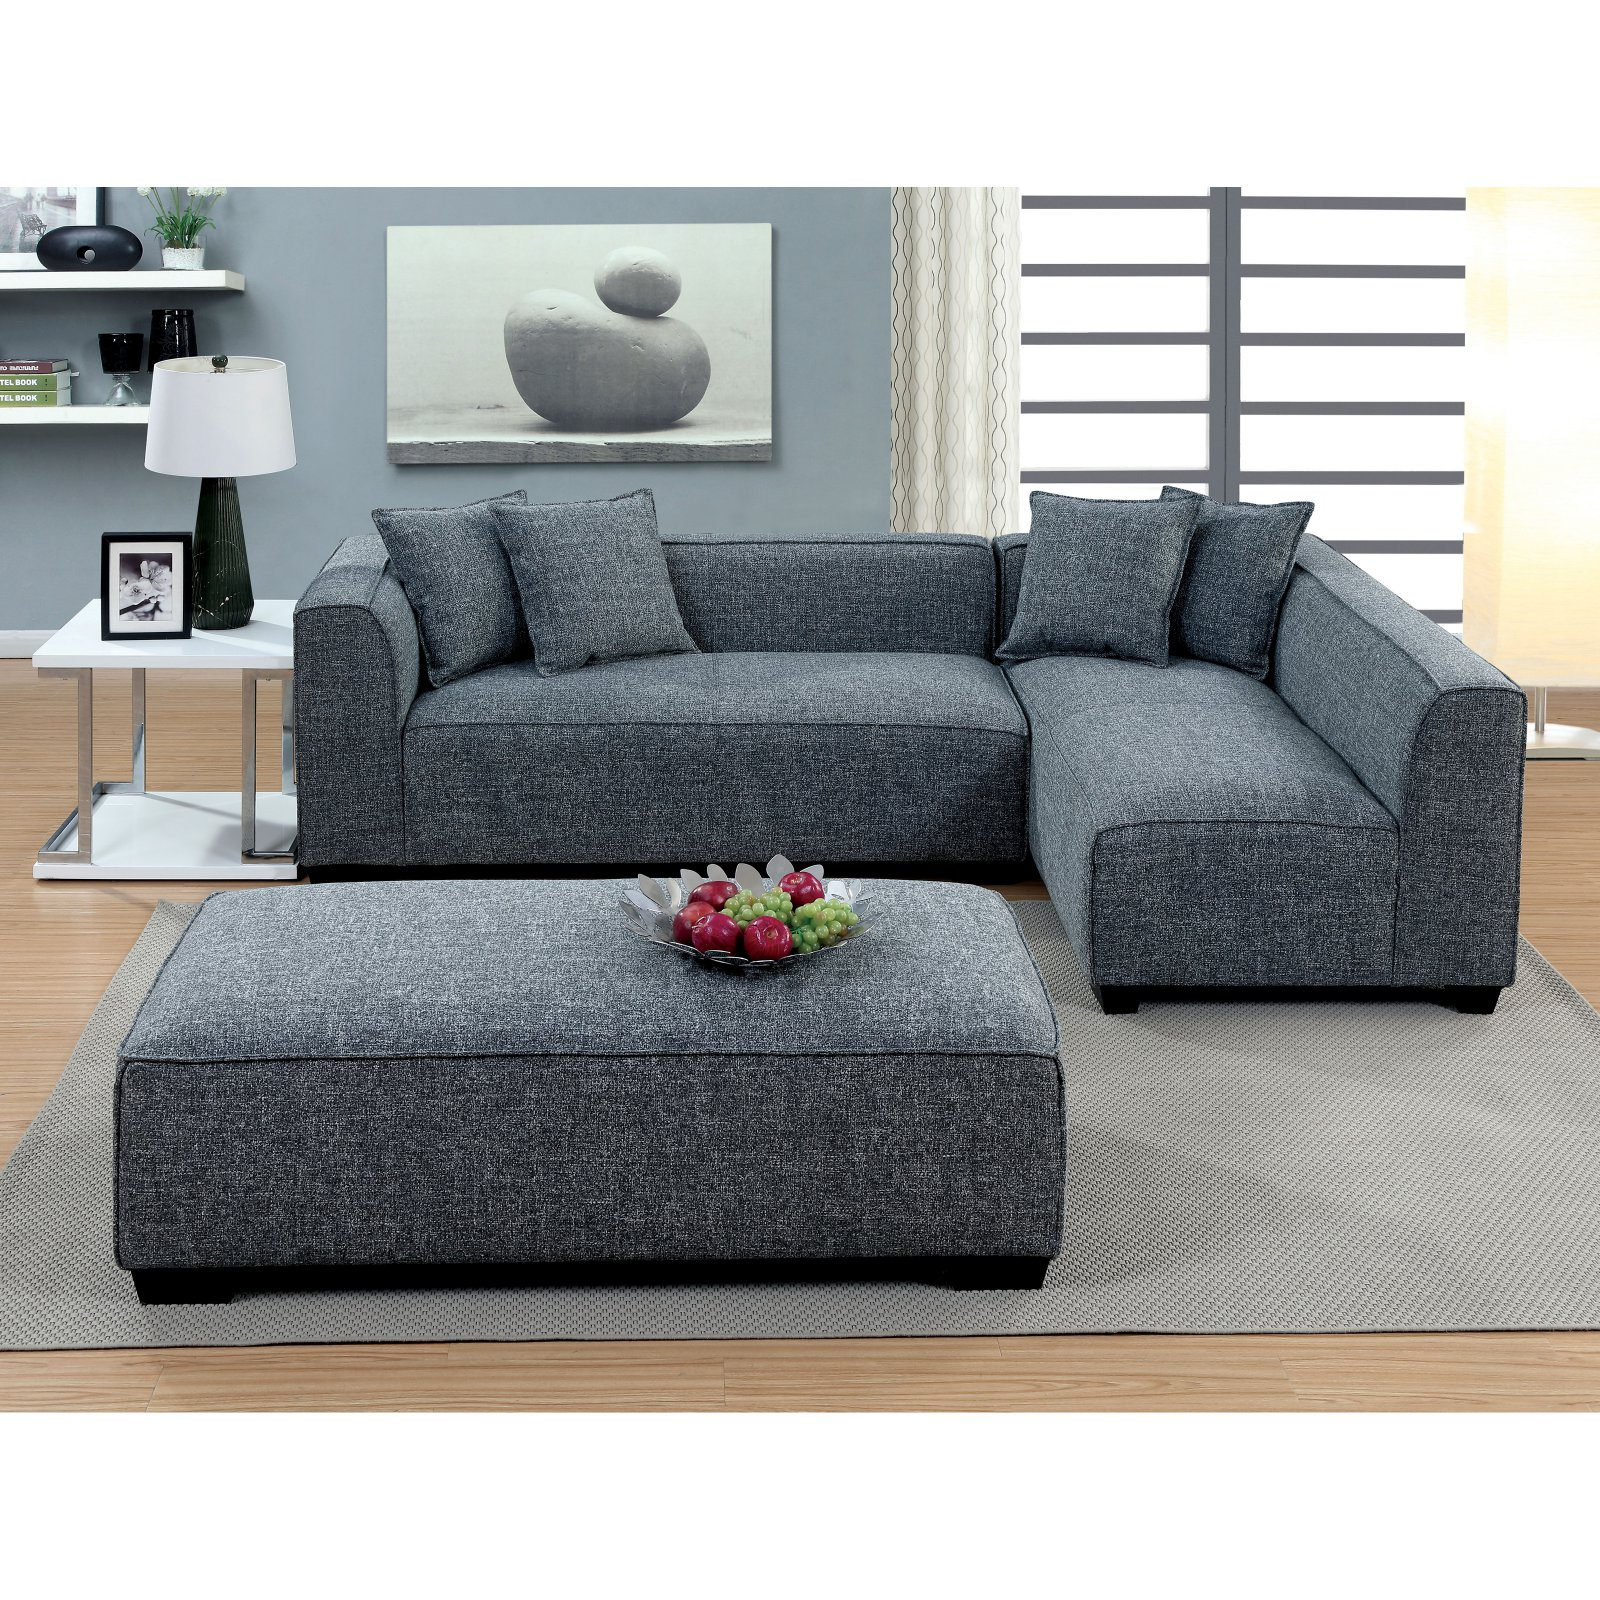 Designer Couch Klein Furniture Of America Misha Contemporary Style Plush Sectional Sofa